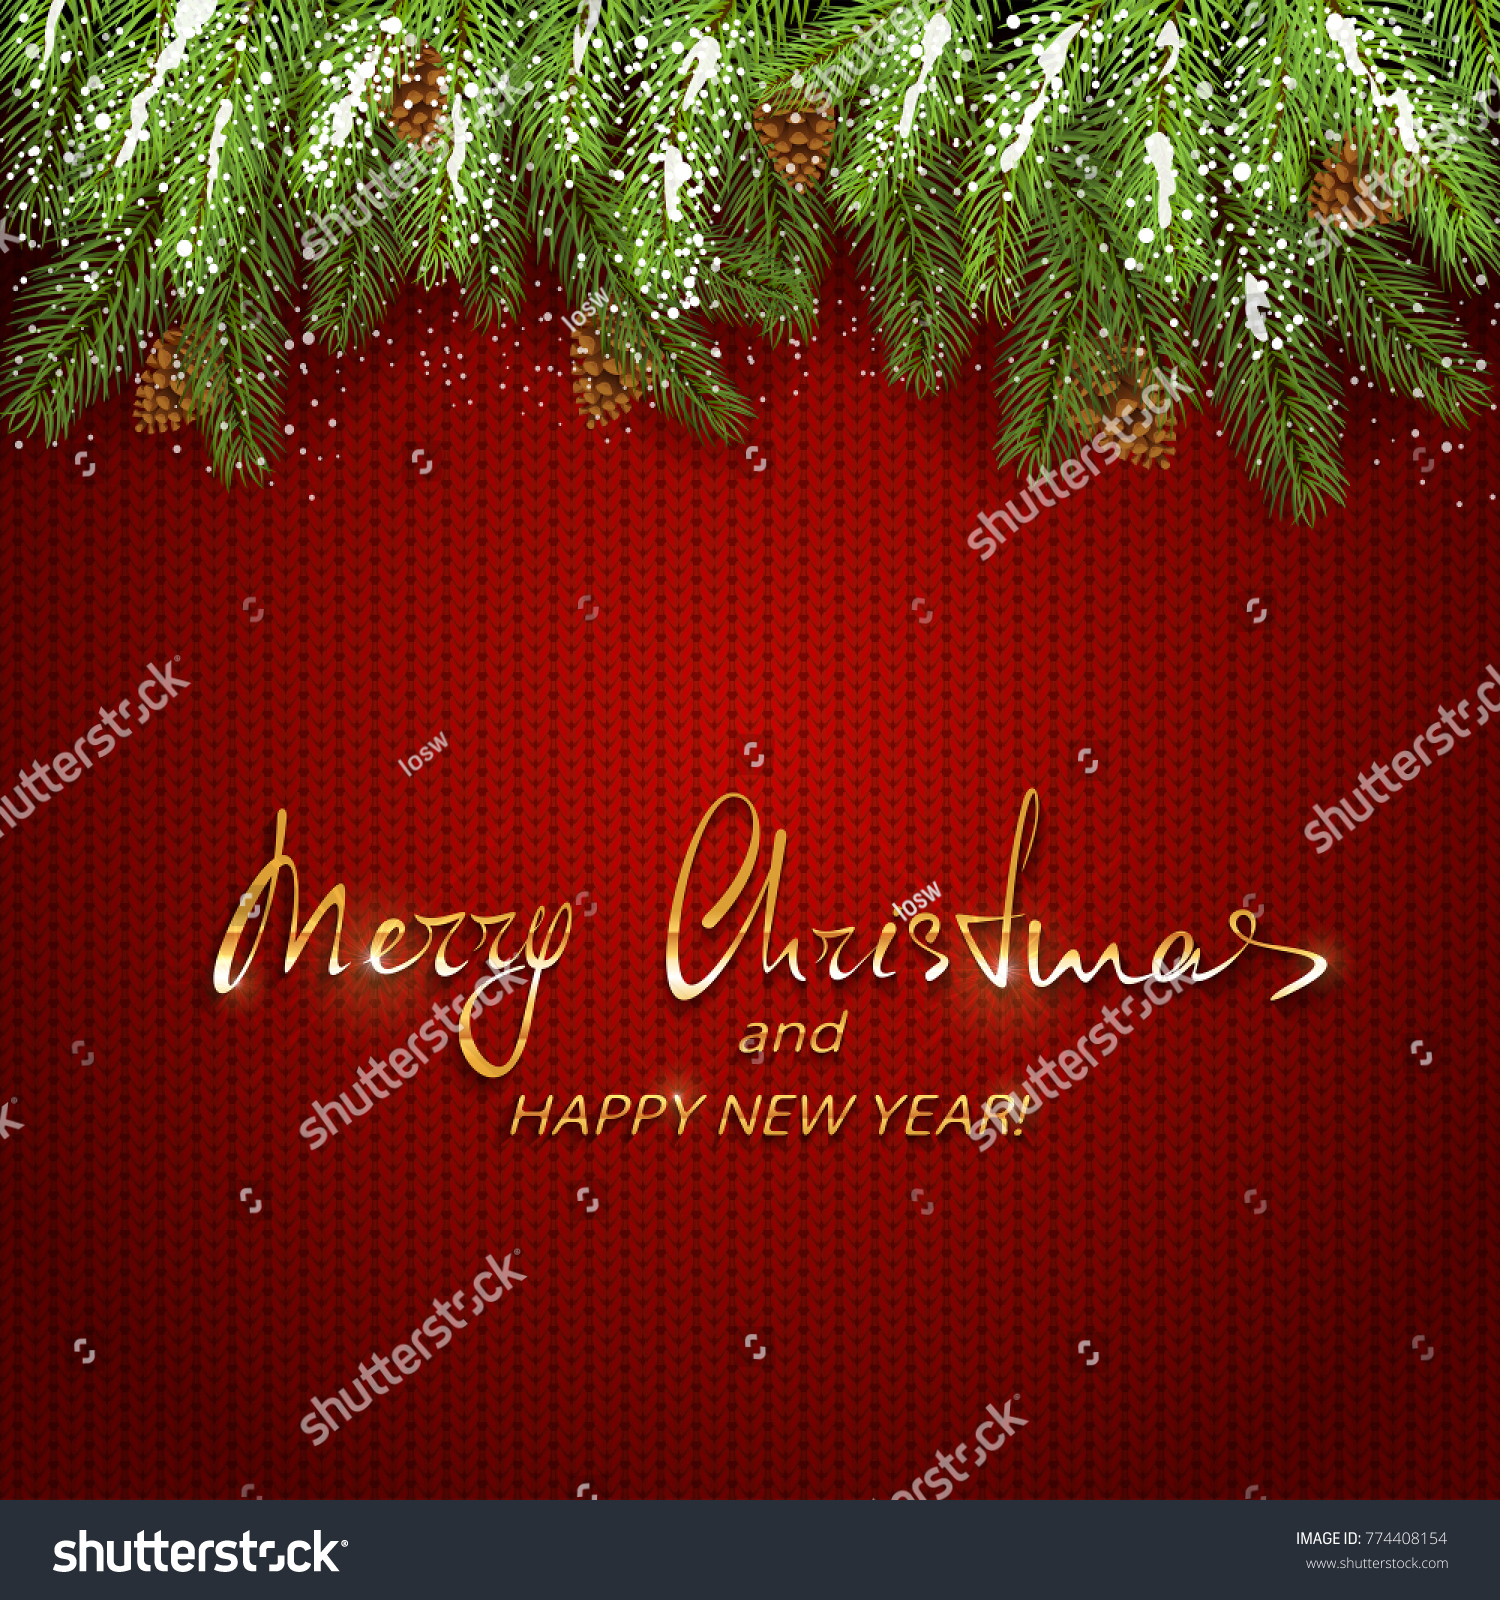 Christmas background spruce branches pine cones stock vector christmas background and spruce branches with pine cones and snow holiday decorations on red knitted bankloansurffo Images